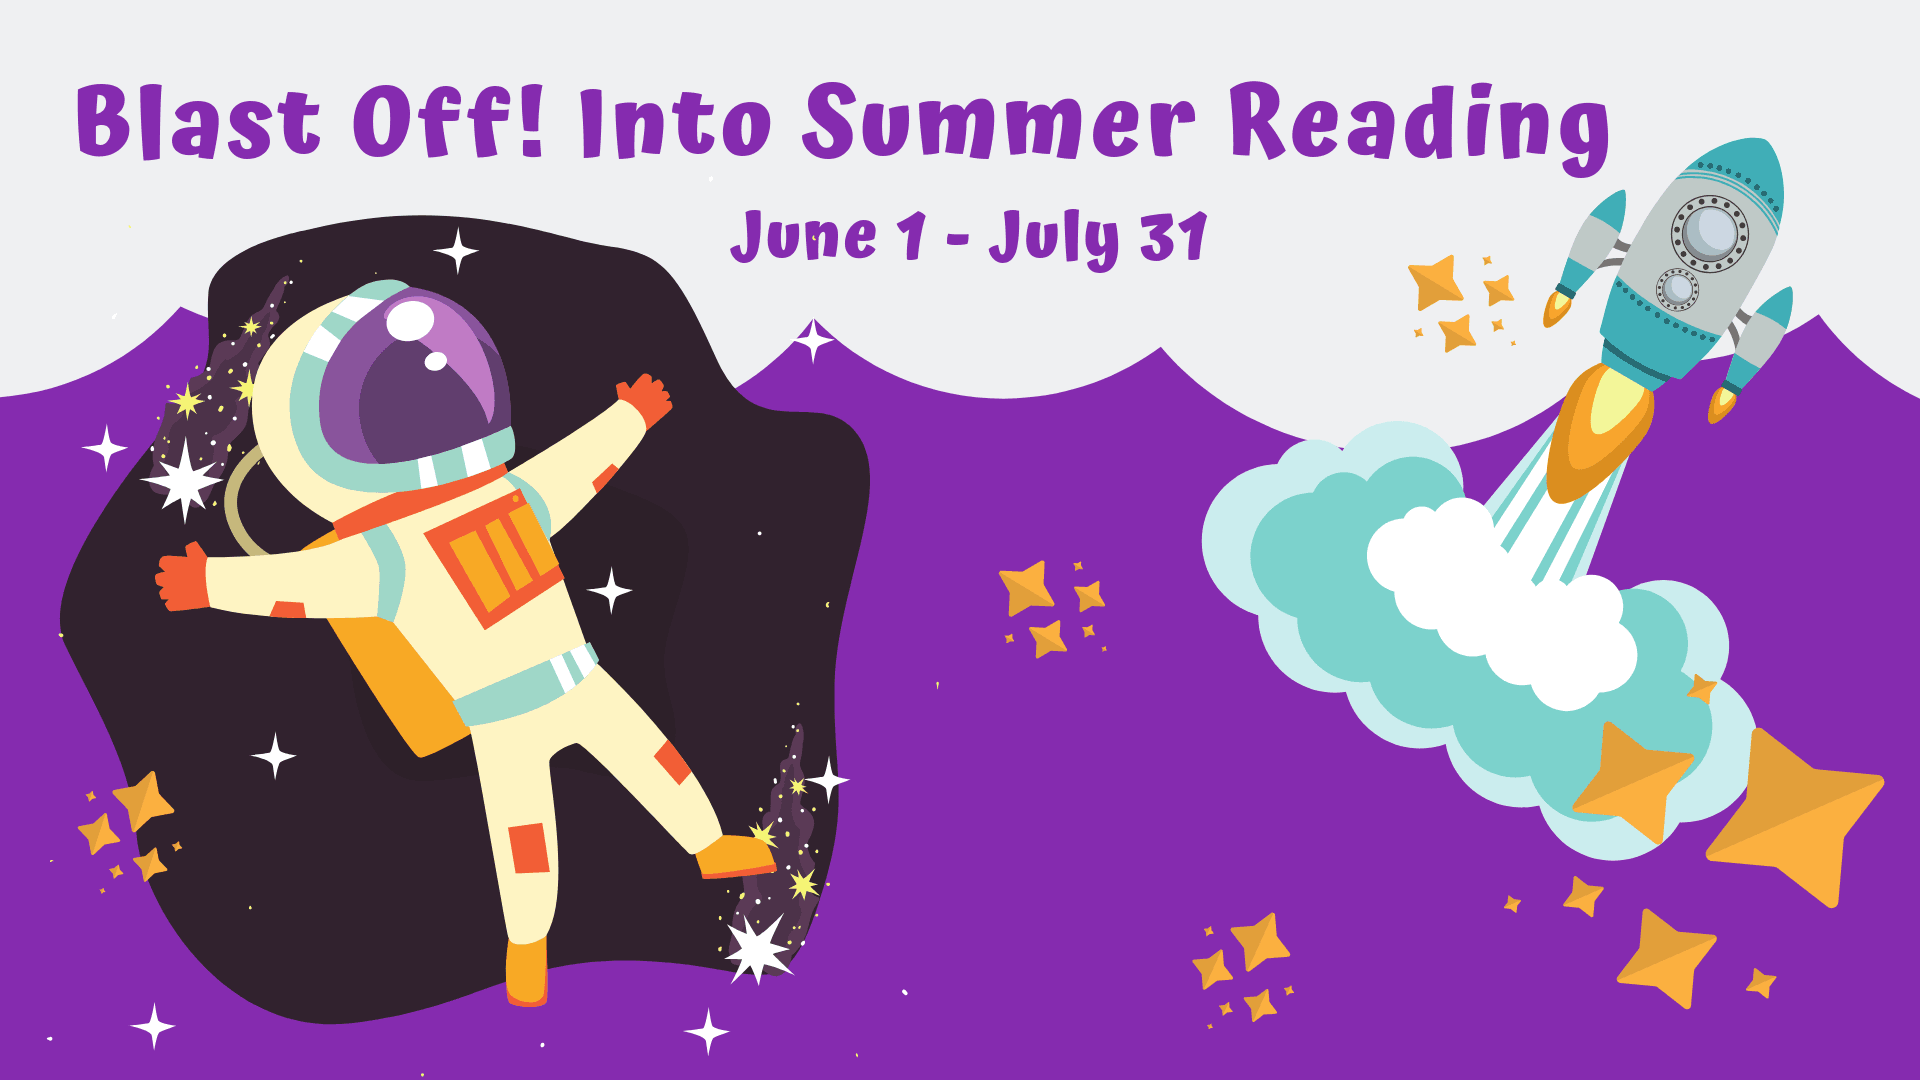 Blast Off Into Summer Reading image of space